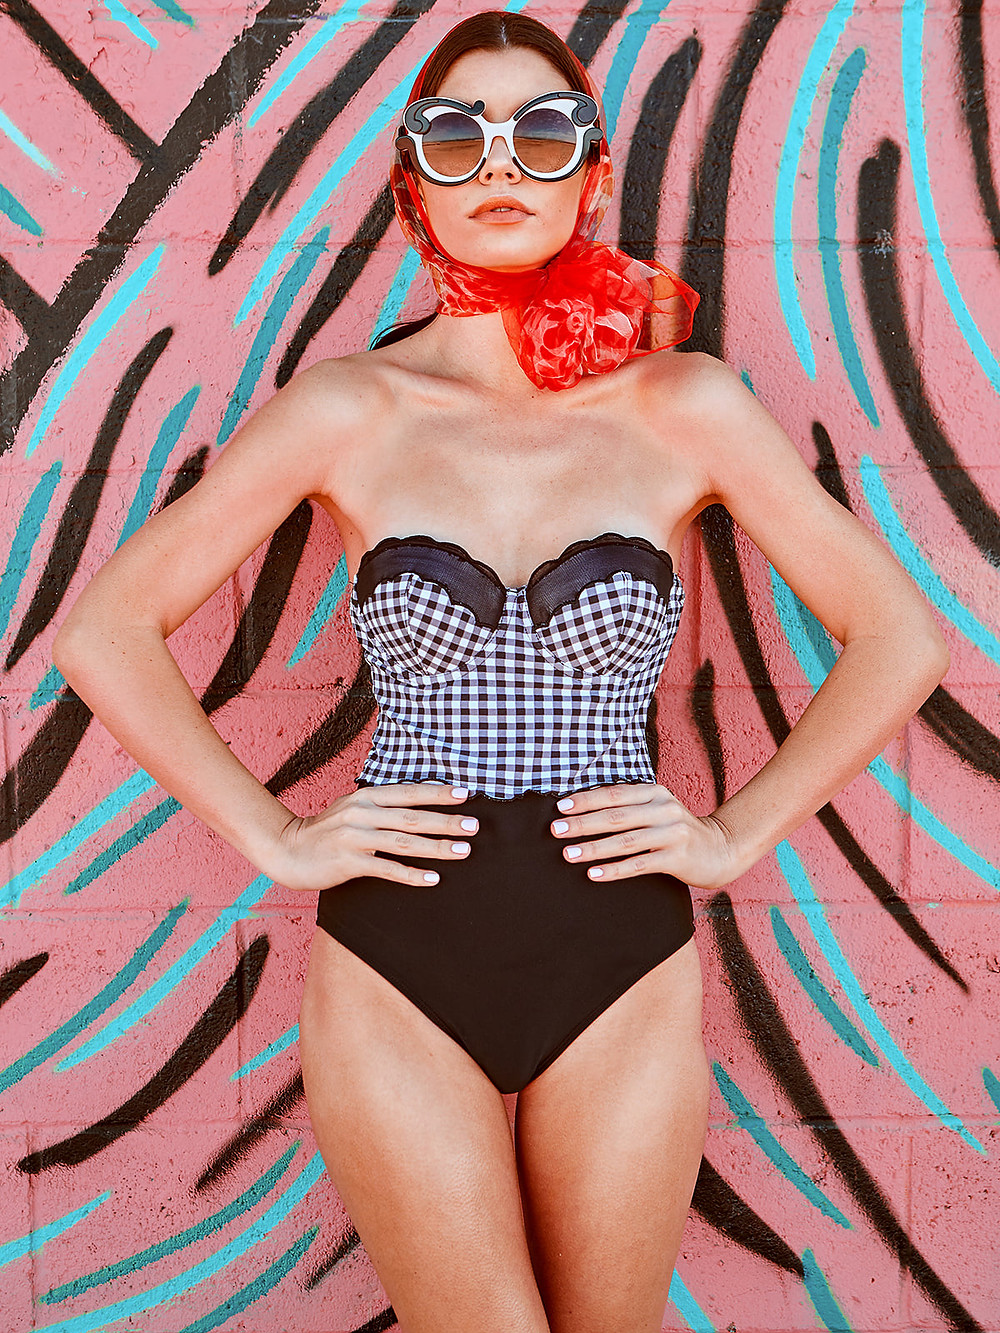 Los Angeles swimwear model Gracie Phillips wears a black and white gingham onepiece swimsuit by Betsy Johnson, swirl sunglasses by Prada, and a red vintage 1950's headscarf for a retro swim fashion photoshoot.